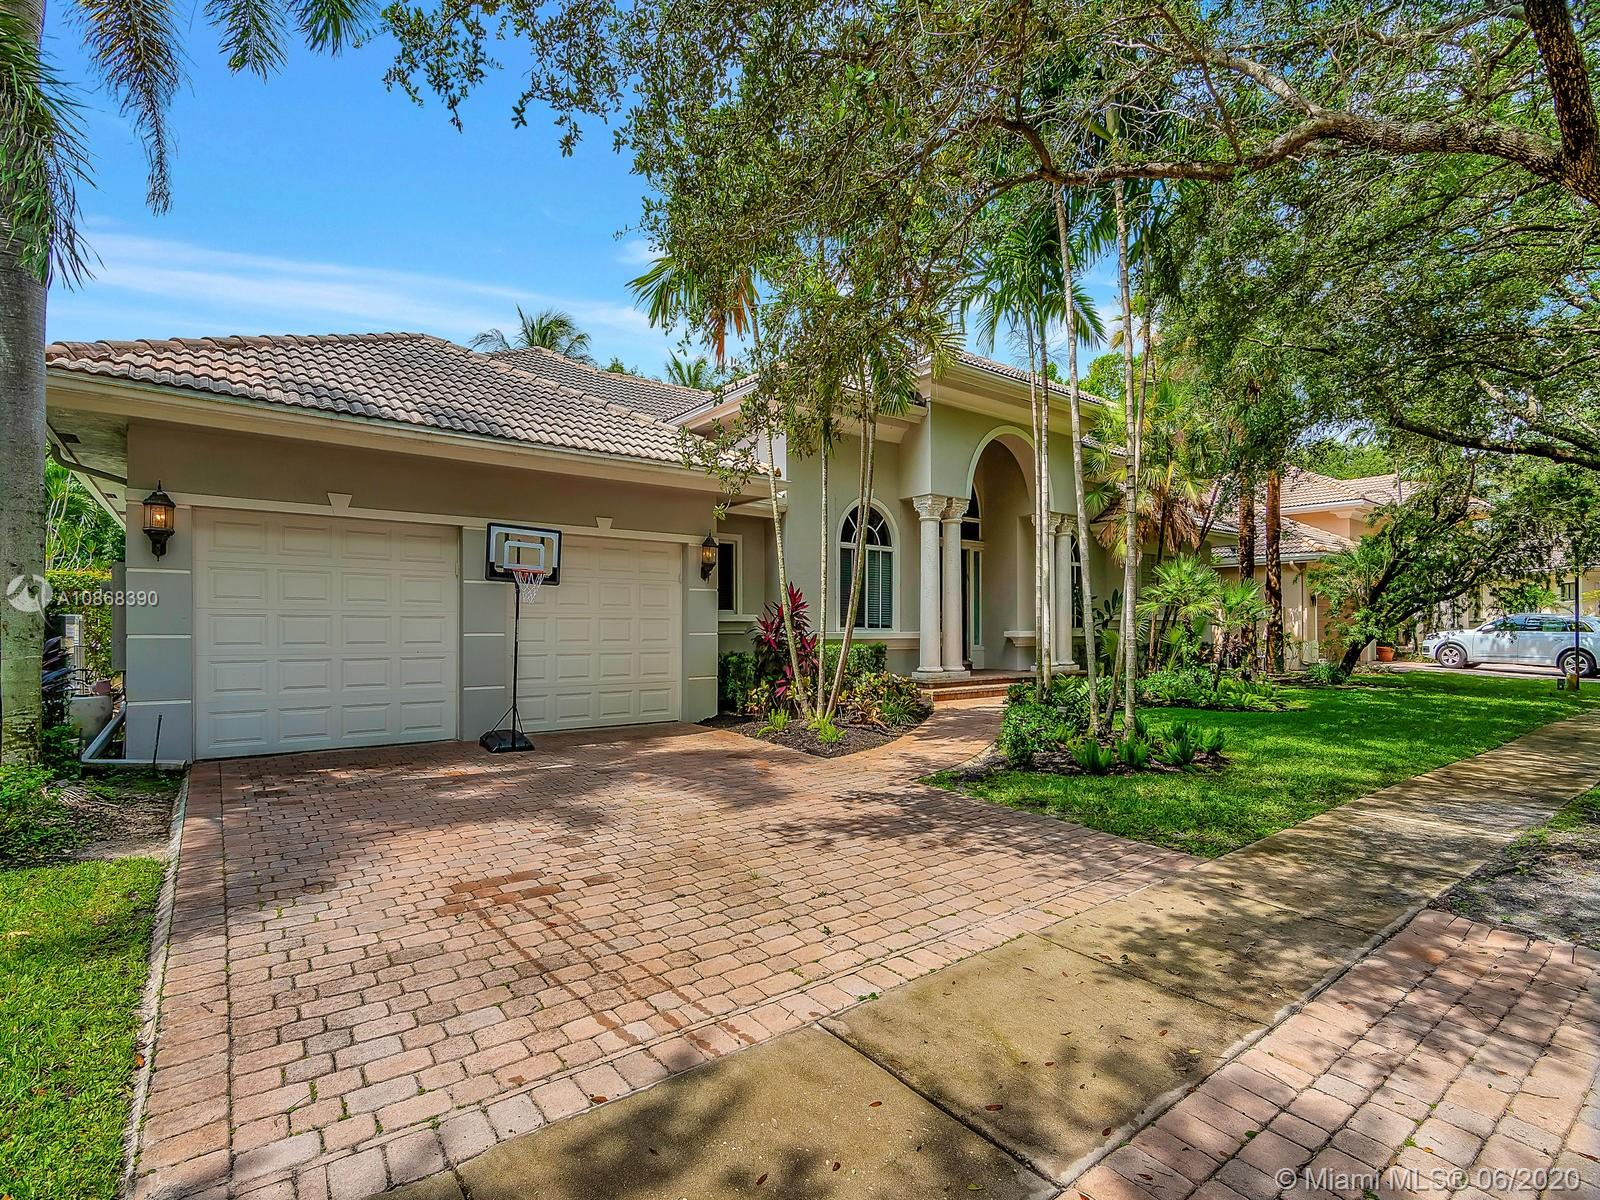 3442  Shady Oak St  For Sale A10868390, FL